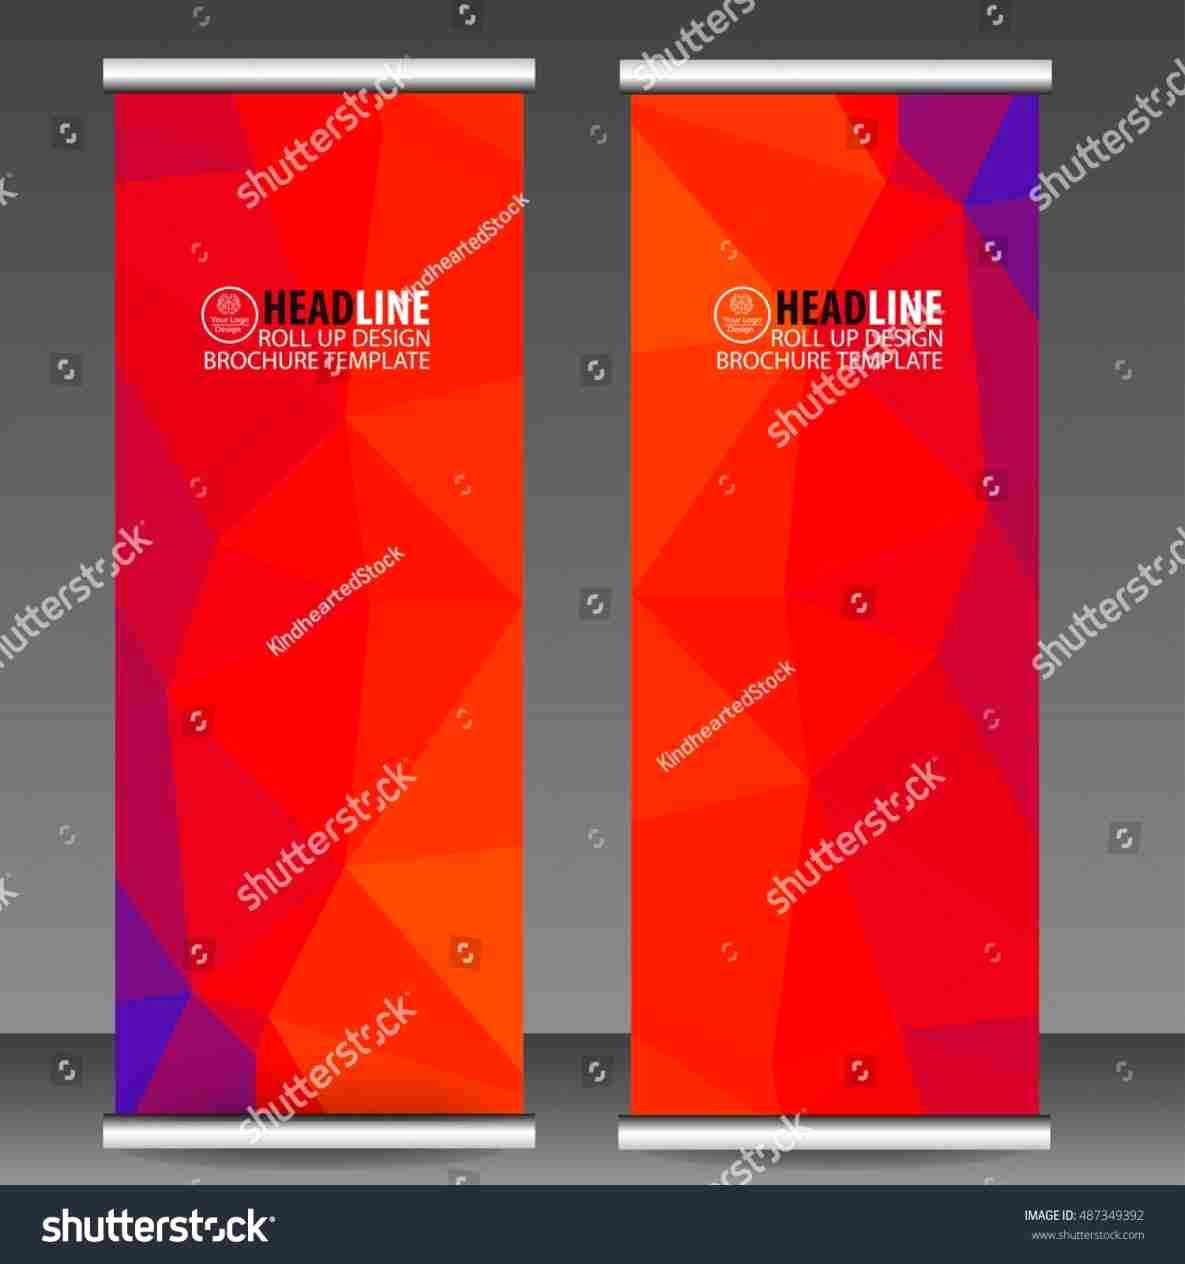 Red Carpet Backdrop Template Inspirational Red Carpet Background Banner Homedesignlatestte